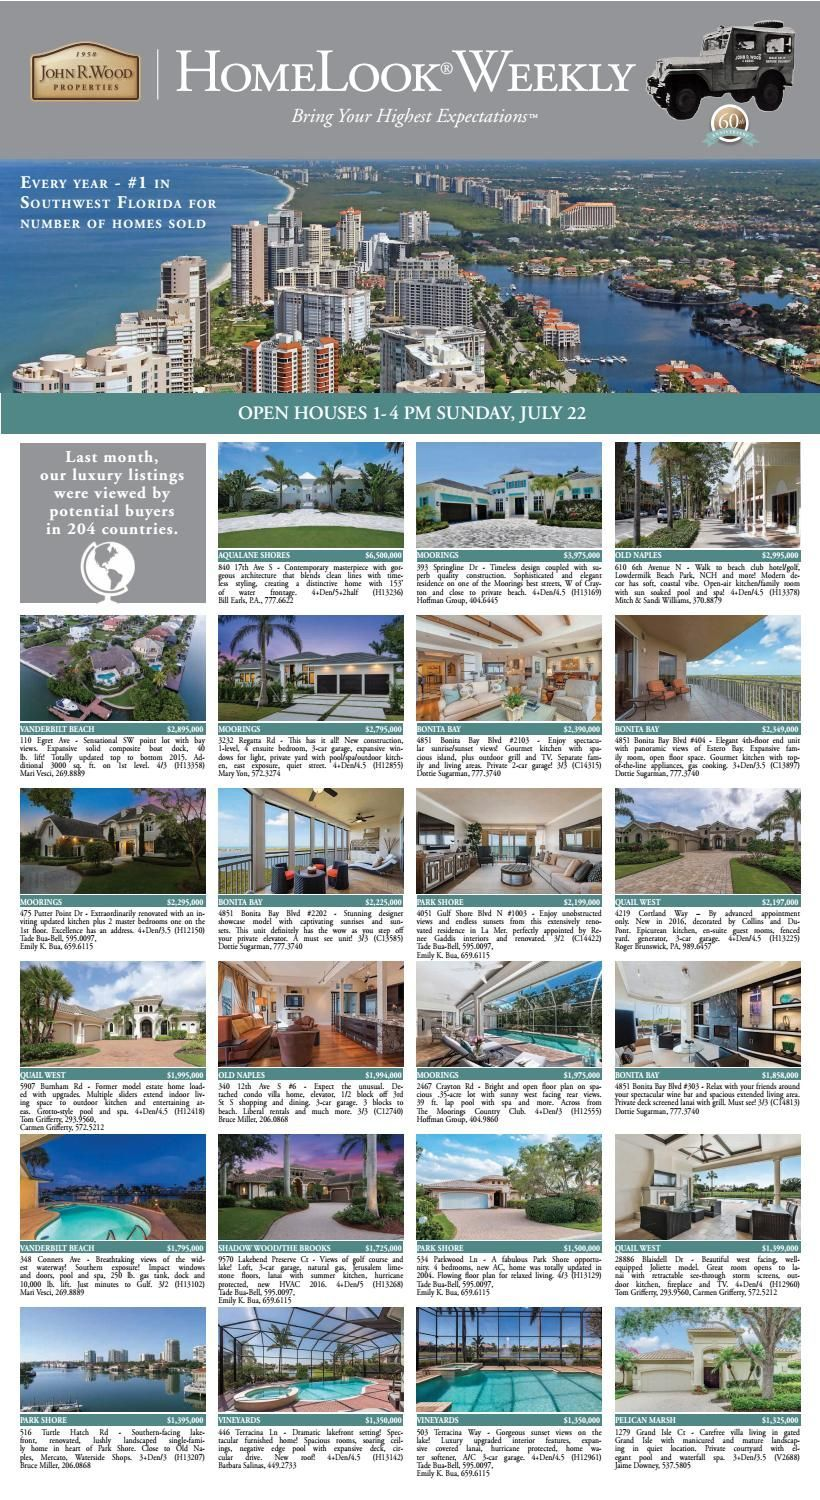 John R Wood Properites Open Houses Today Http Issuu Com Www Johnrwood Com Docs Homelook Weekly Jul Property Open House Real Estate Buying Open Houses Today